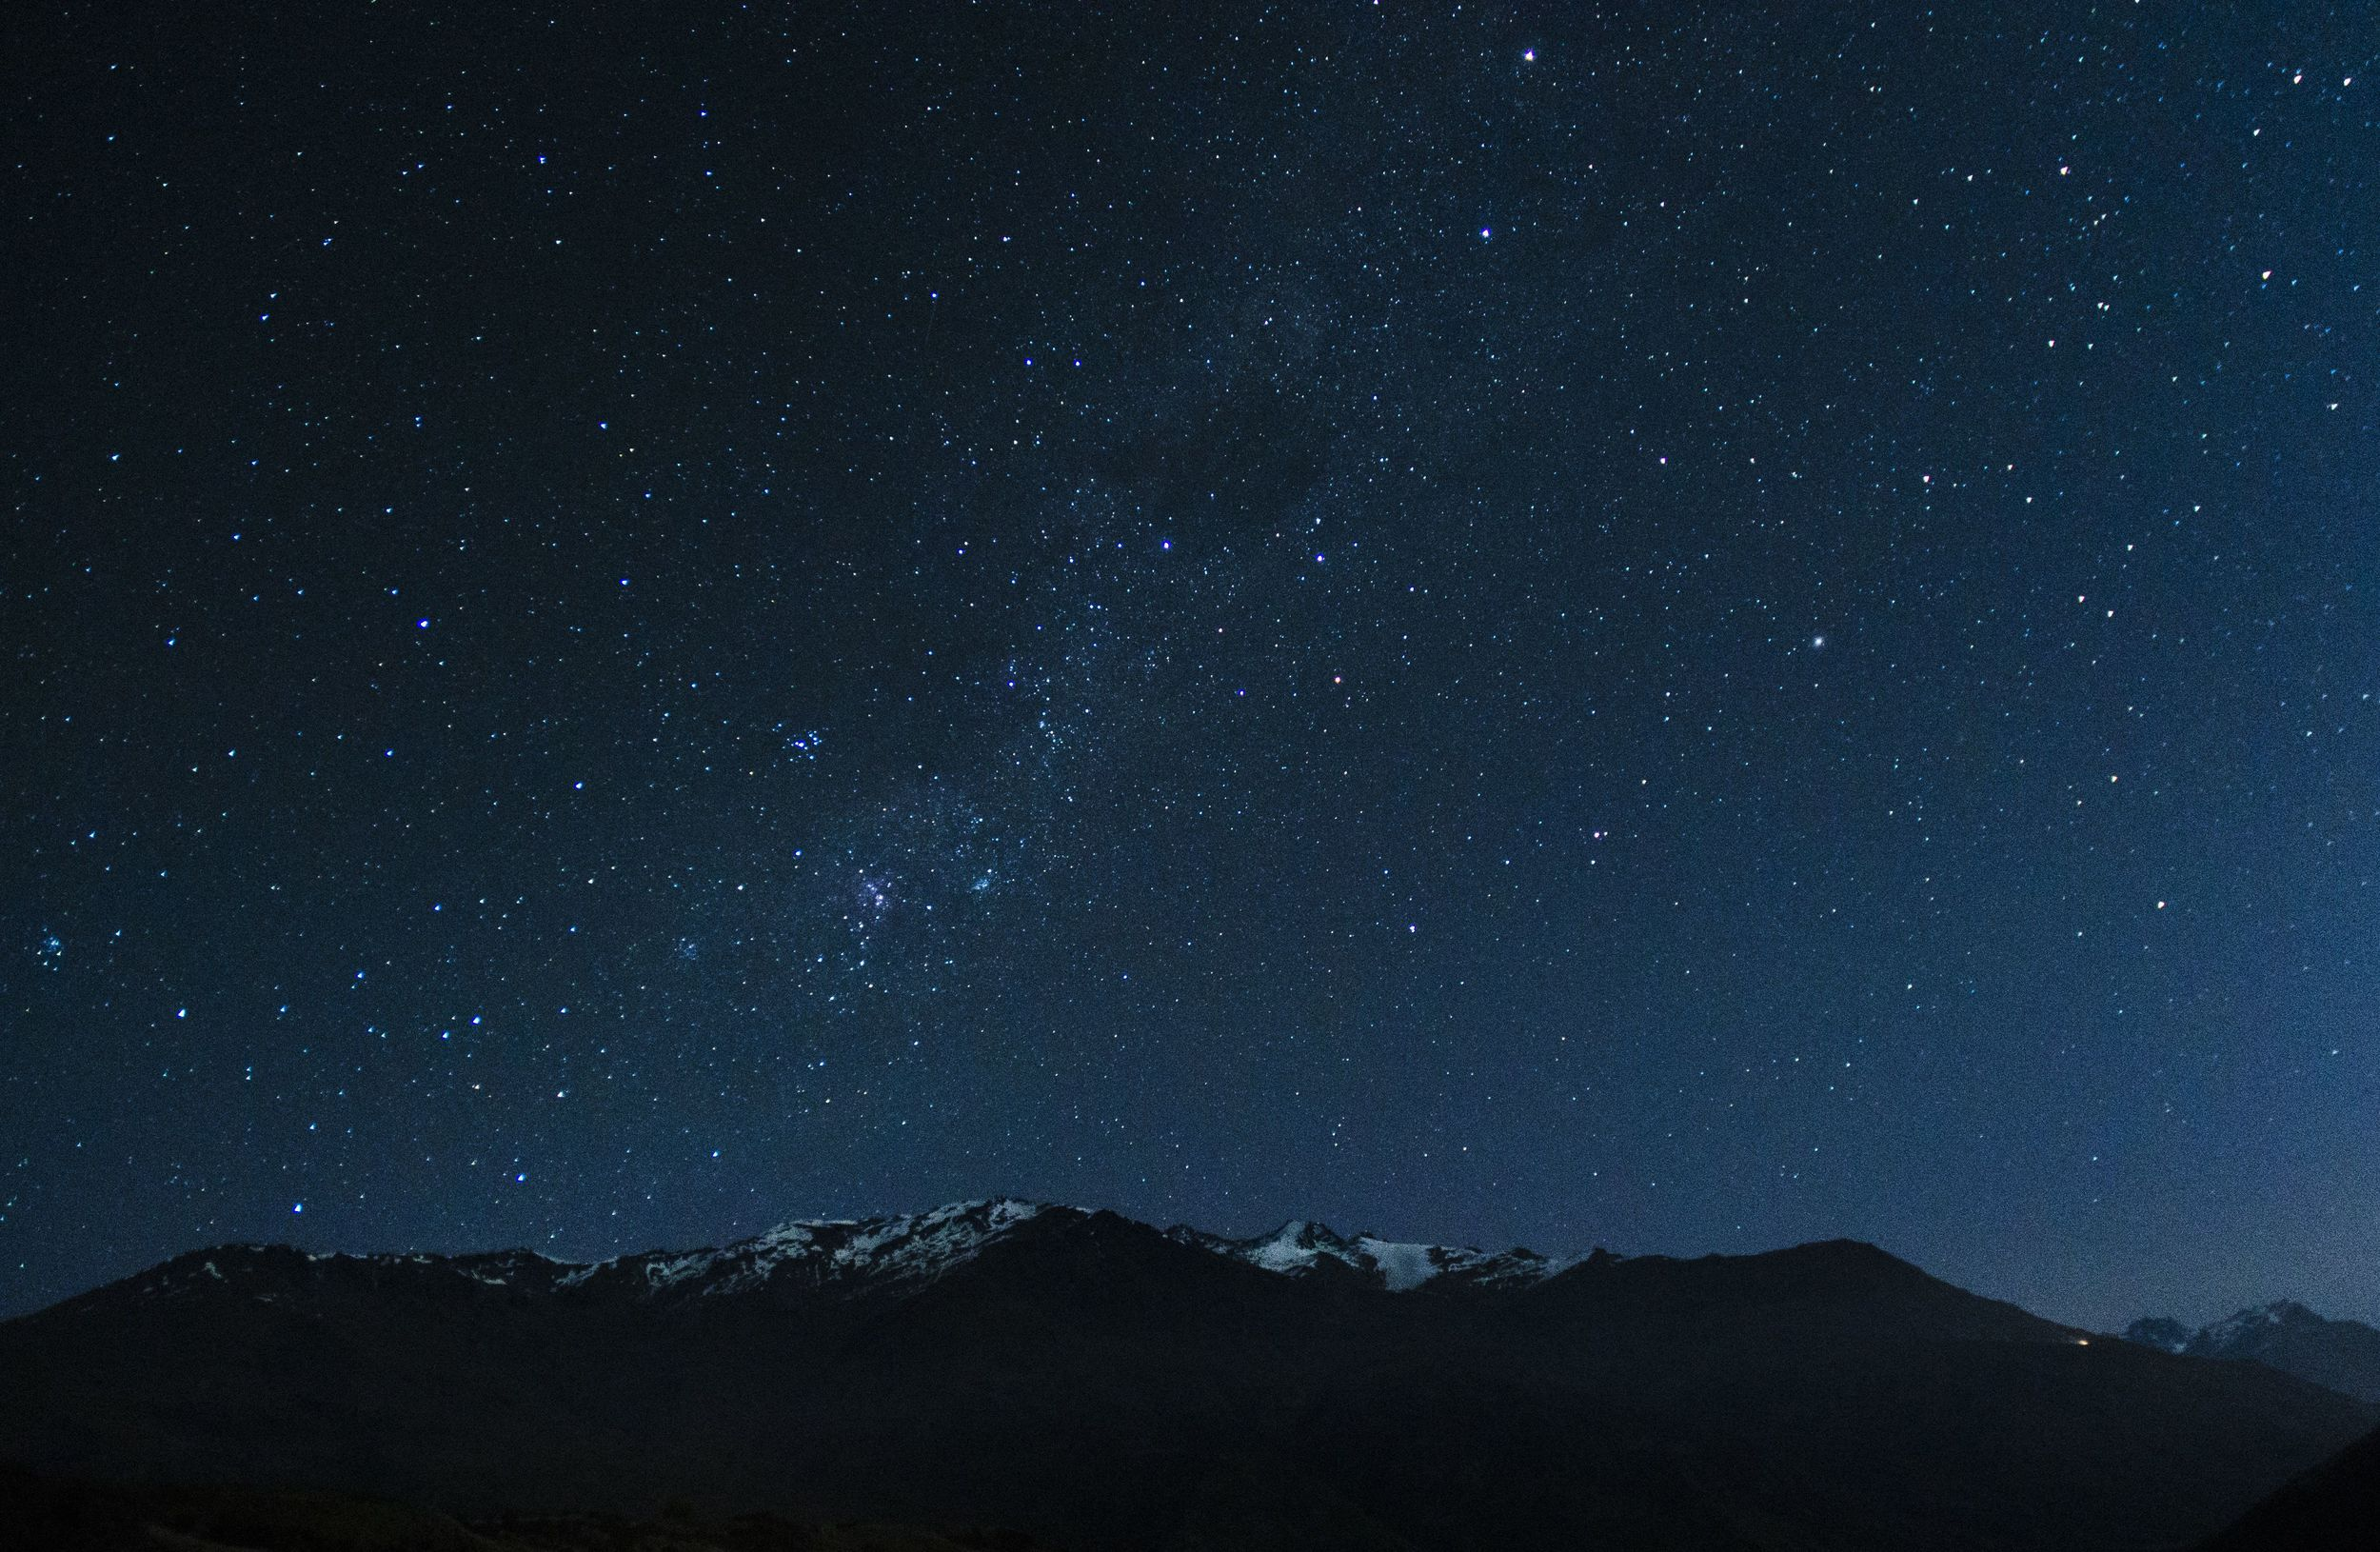 Andrew took this picture of the milky way over the Remarkables Mountains, pretty remarkable.